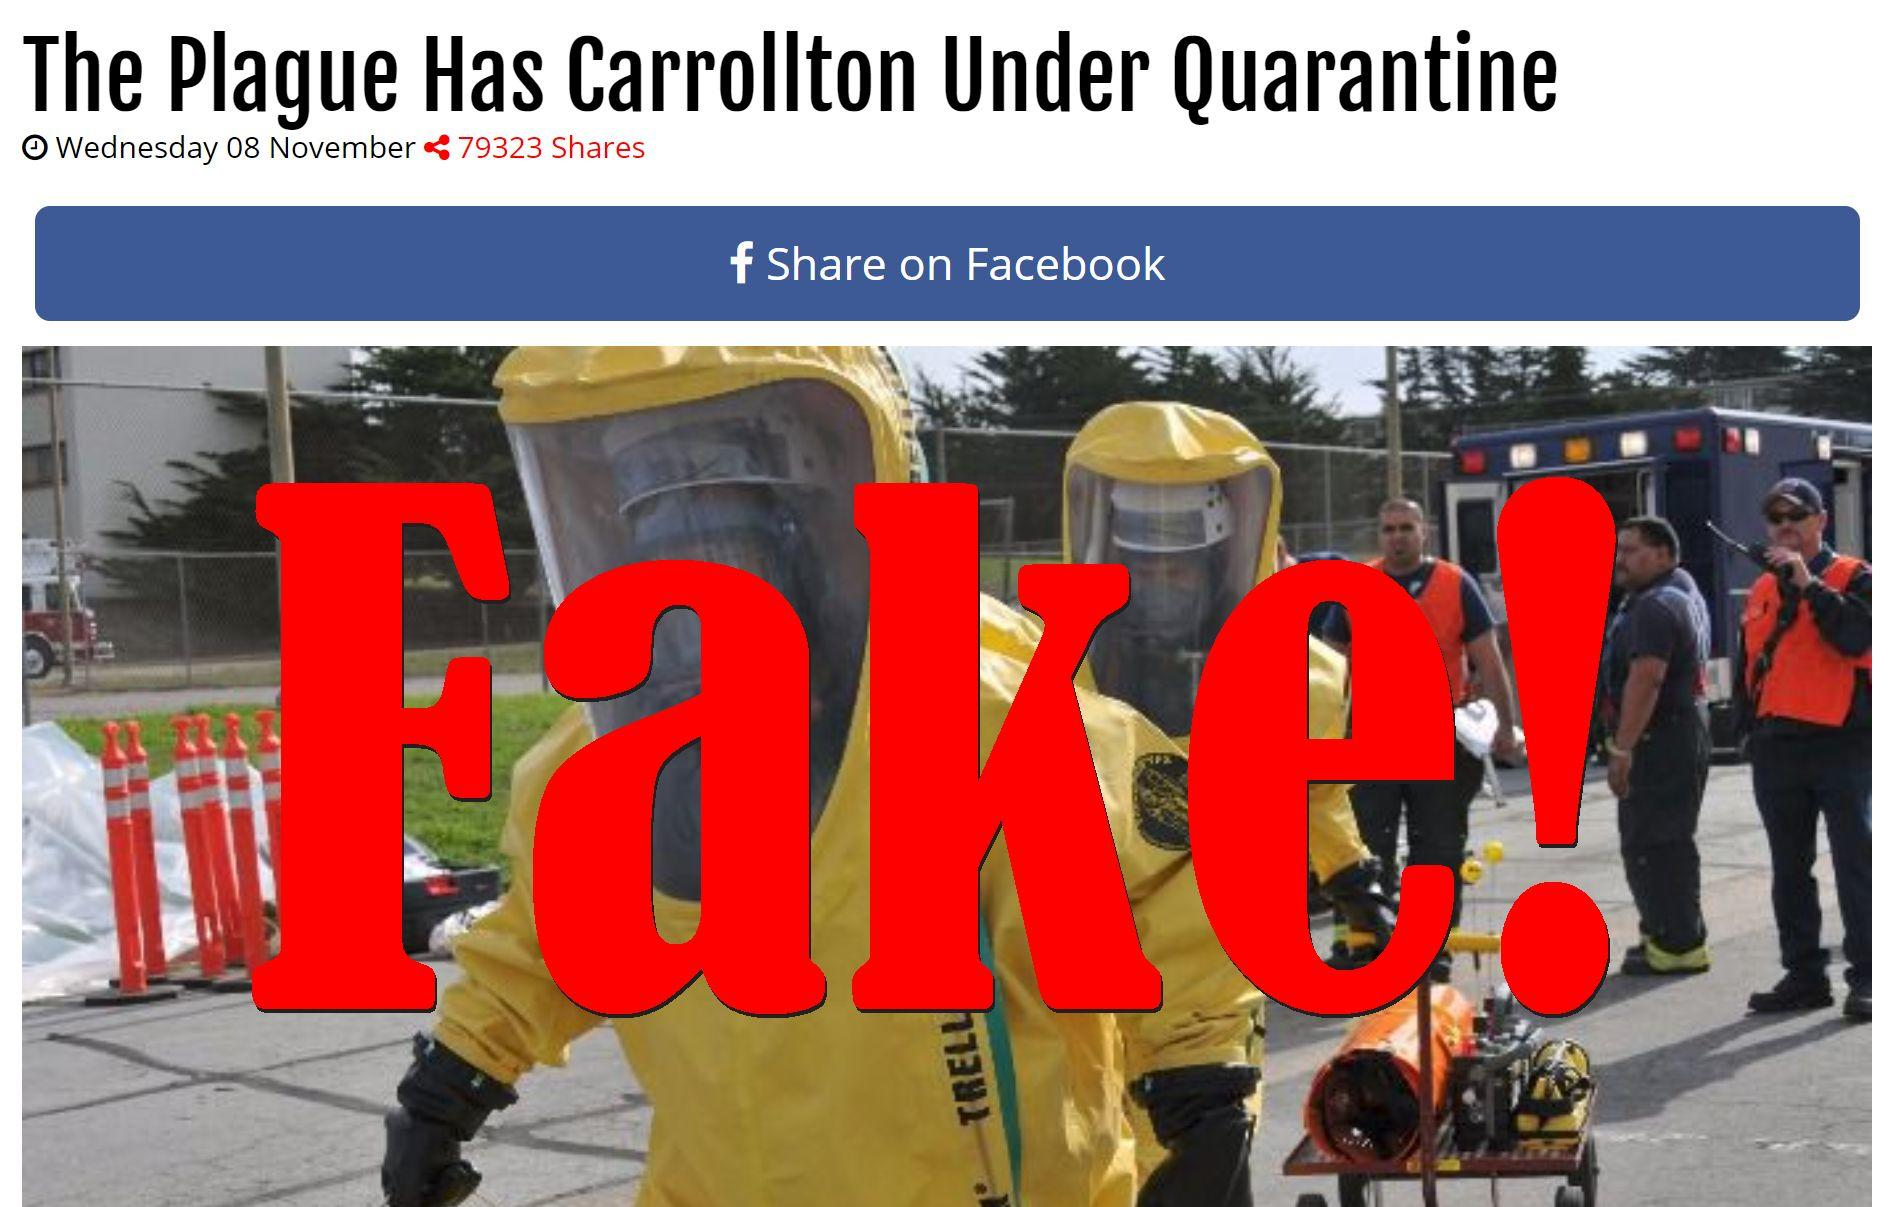 Fake News: The Plague Does NOT Have Carrollton Under Quarantine